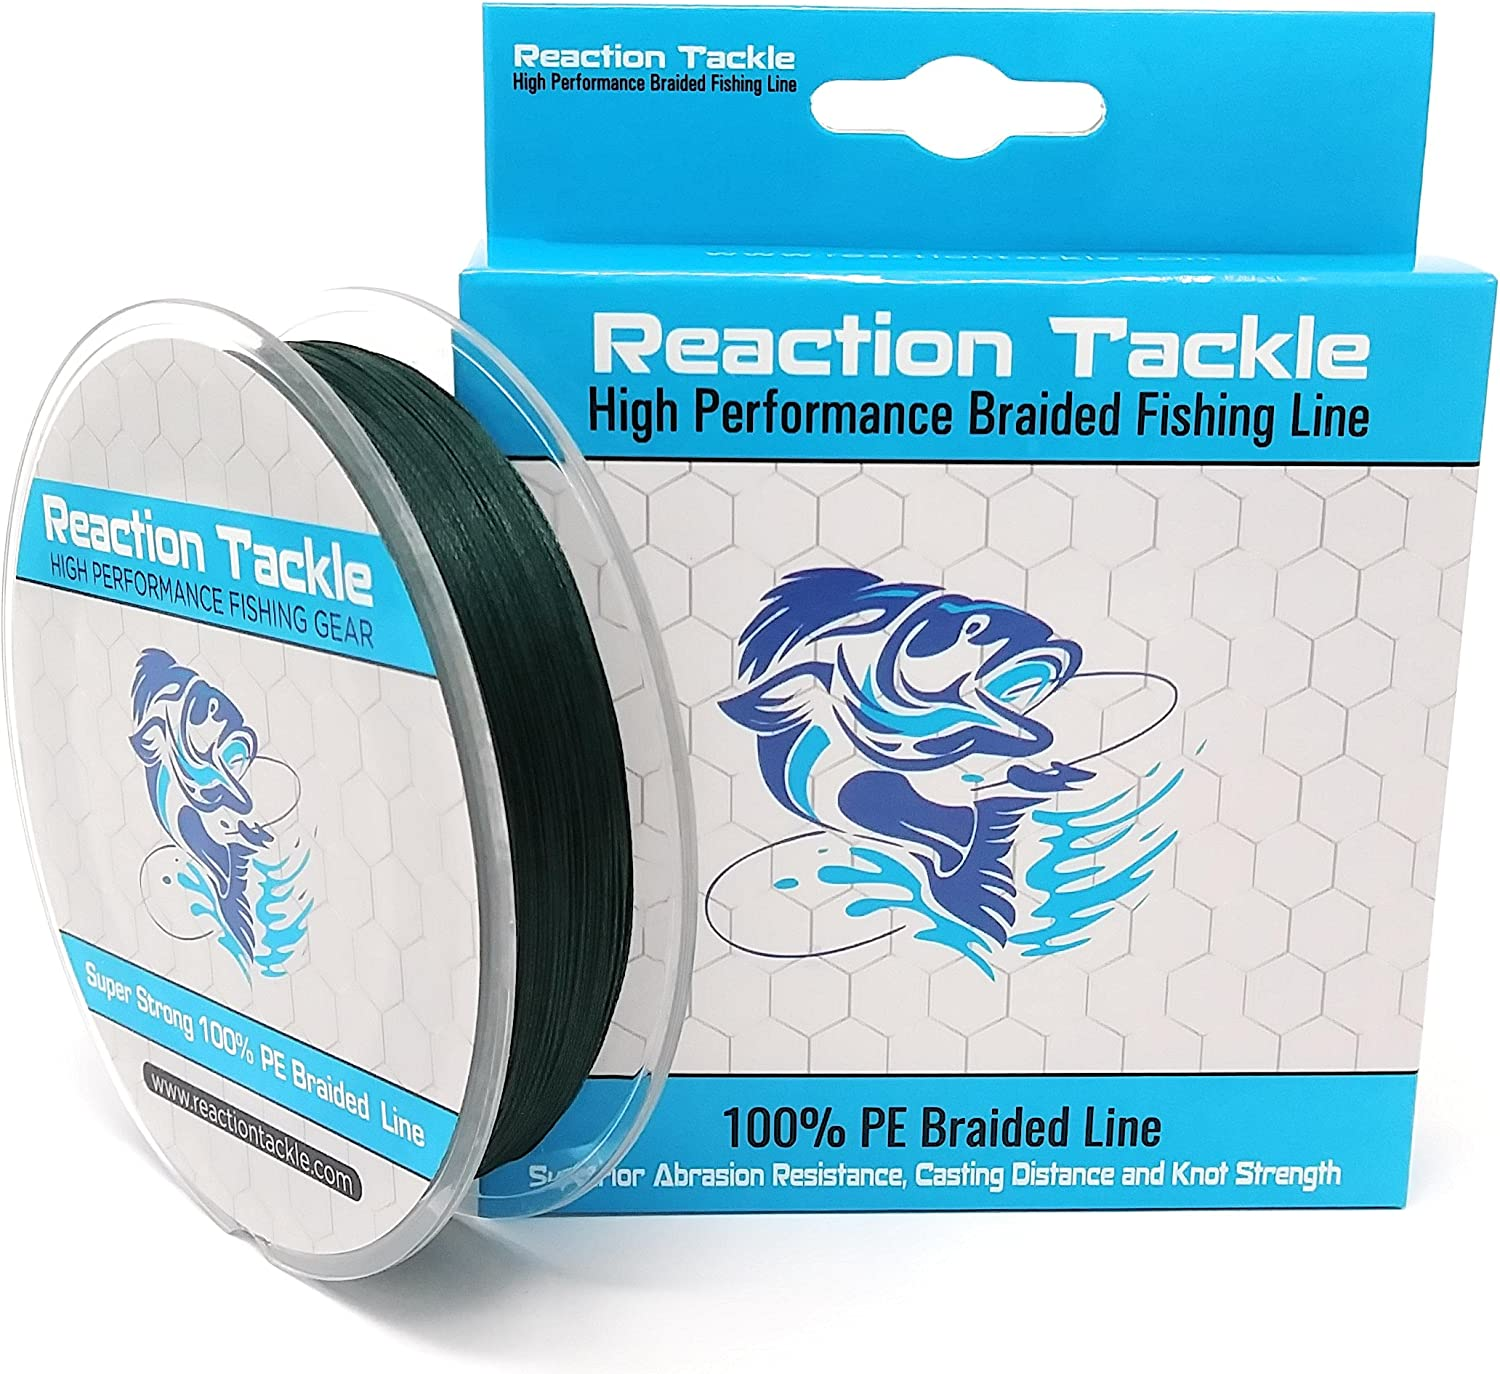 Reaction Tackle New 9 Strand Braided Fishing Line- Extreme Casting Distance Ultimate Strength Fresh or Saltwater Fishing